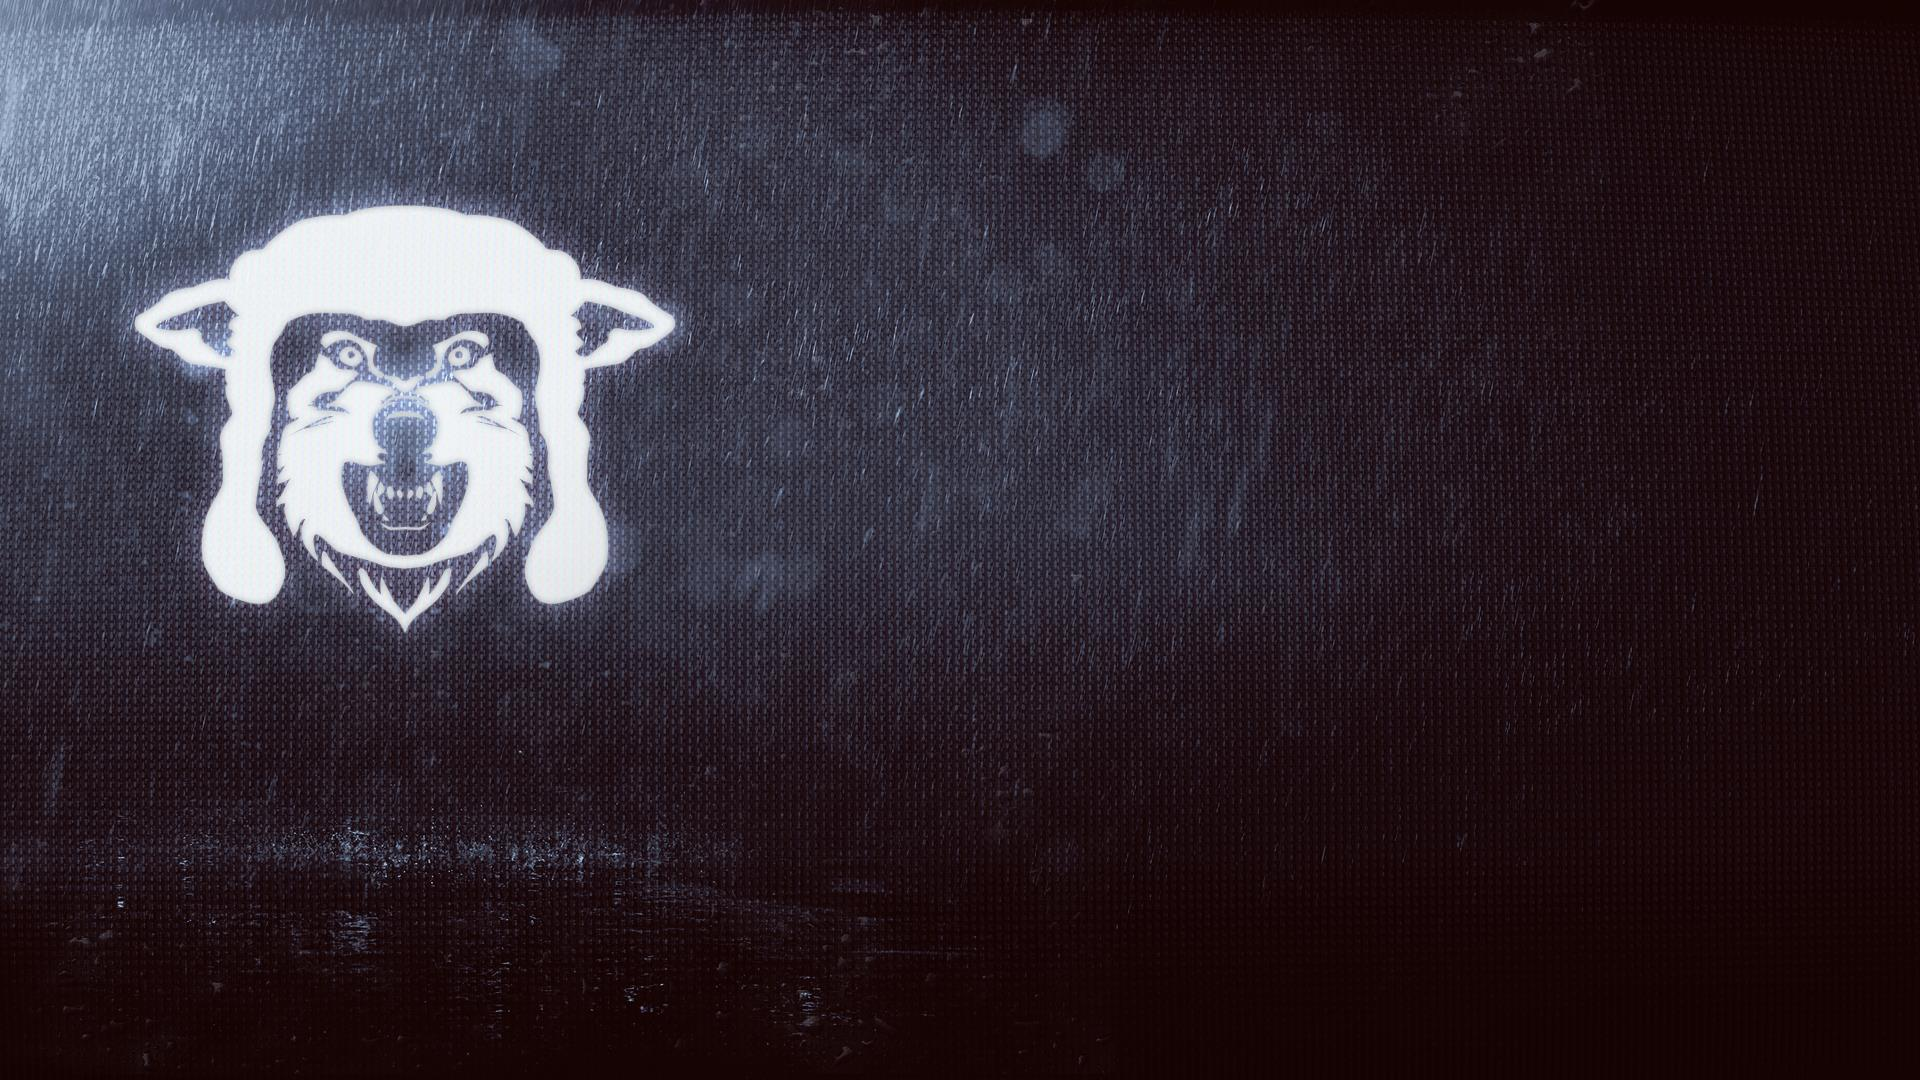 Wolves in sheep's clothing in Battlefield 4 (Xbox One)